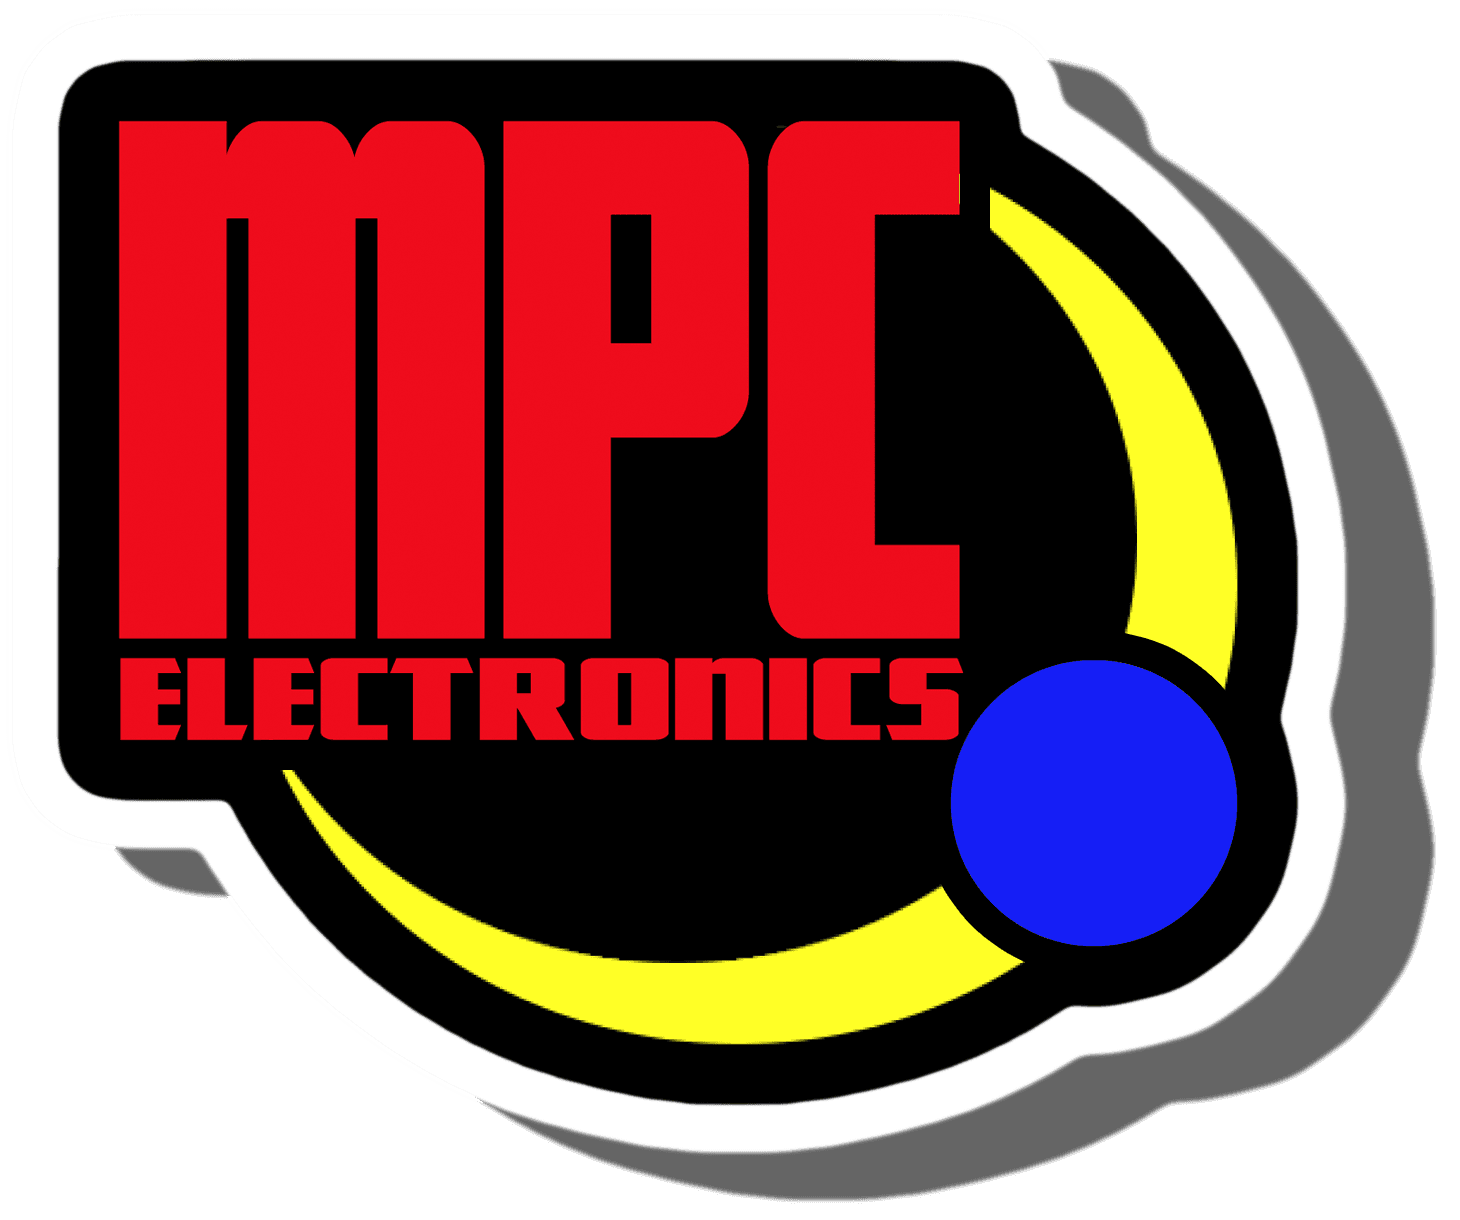 Mpc computer store in. Electronics clipart electronics technician